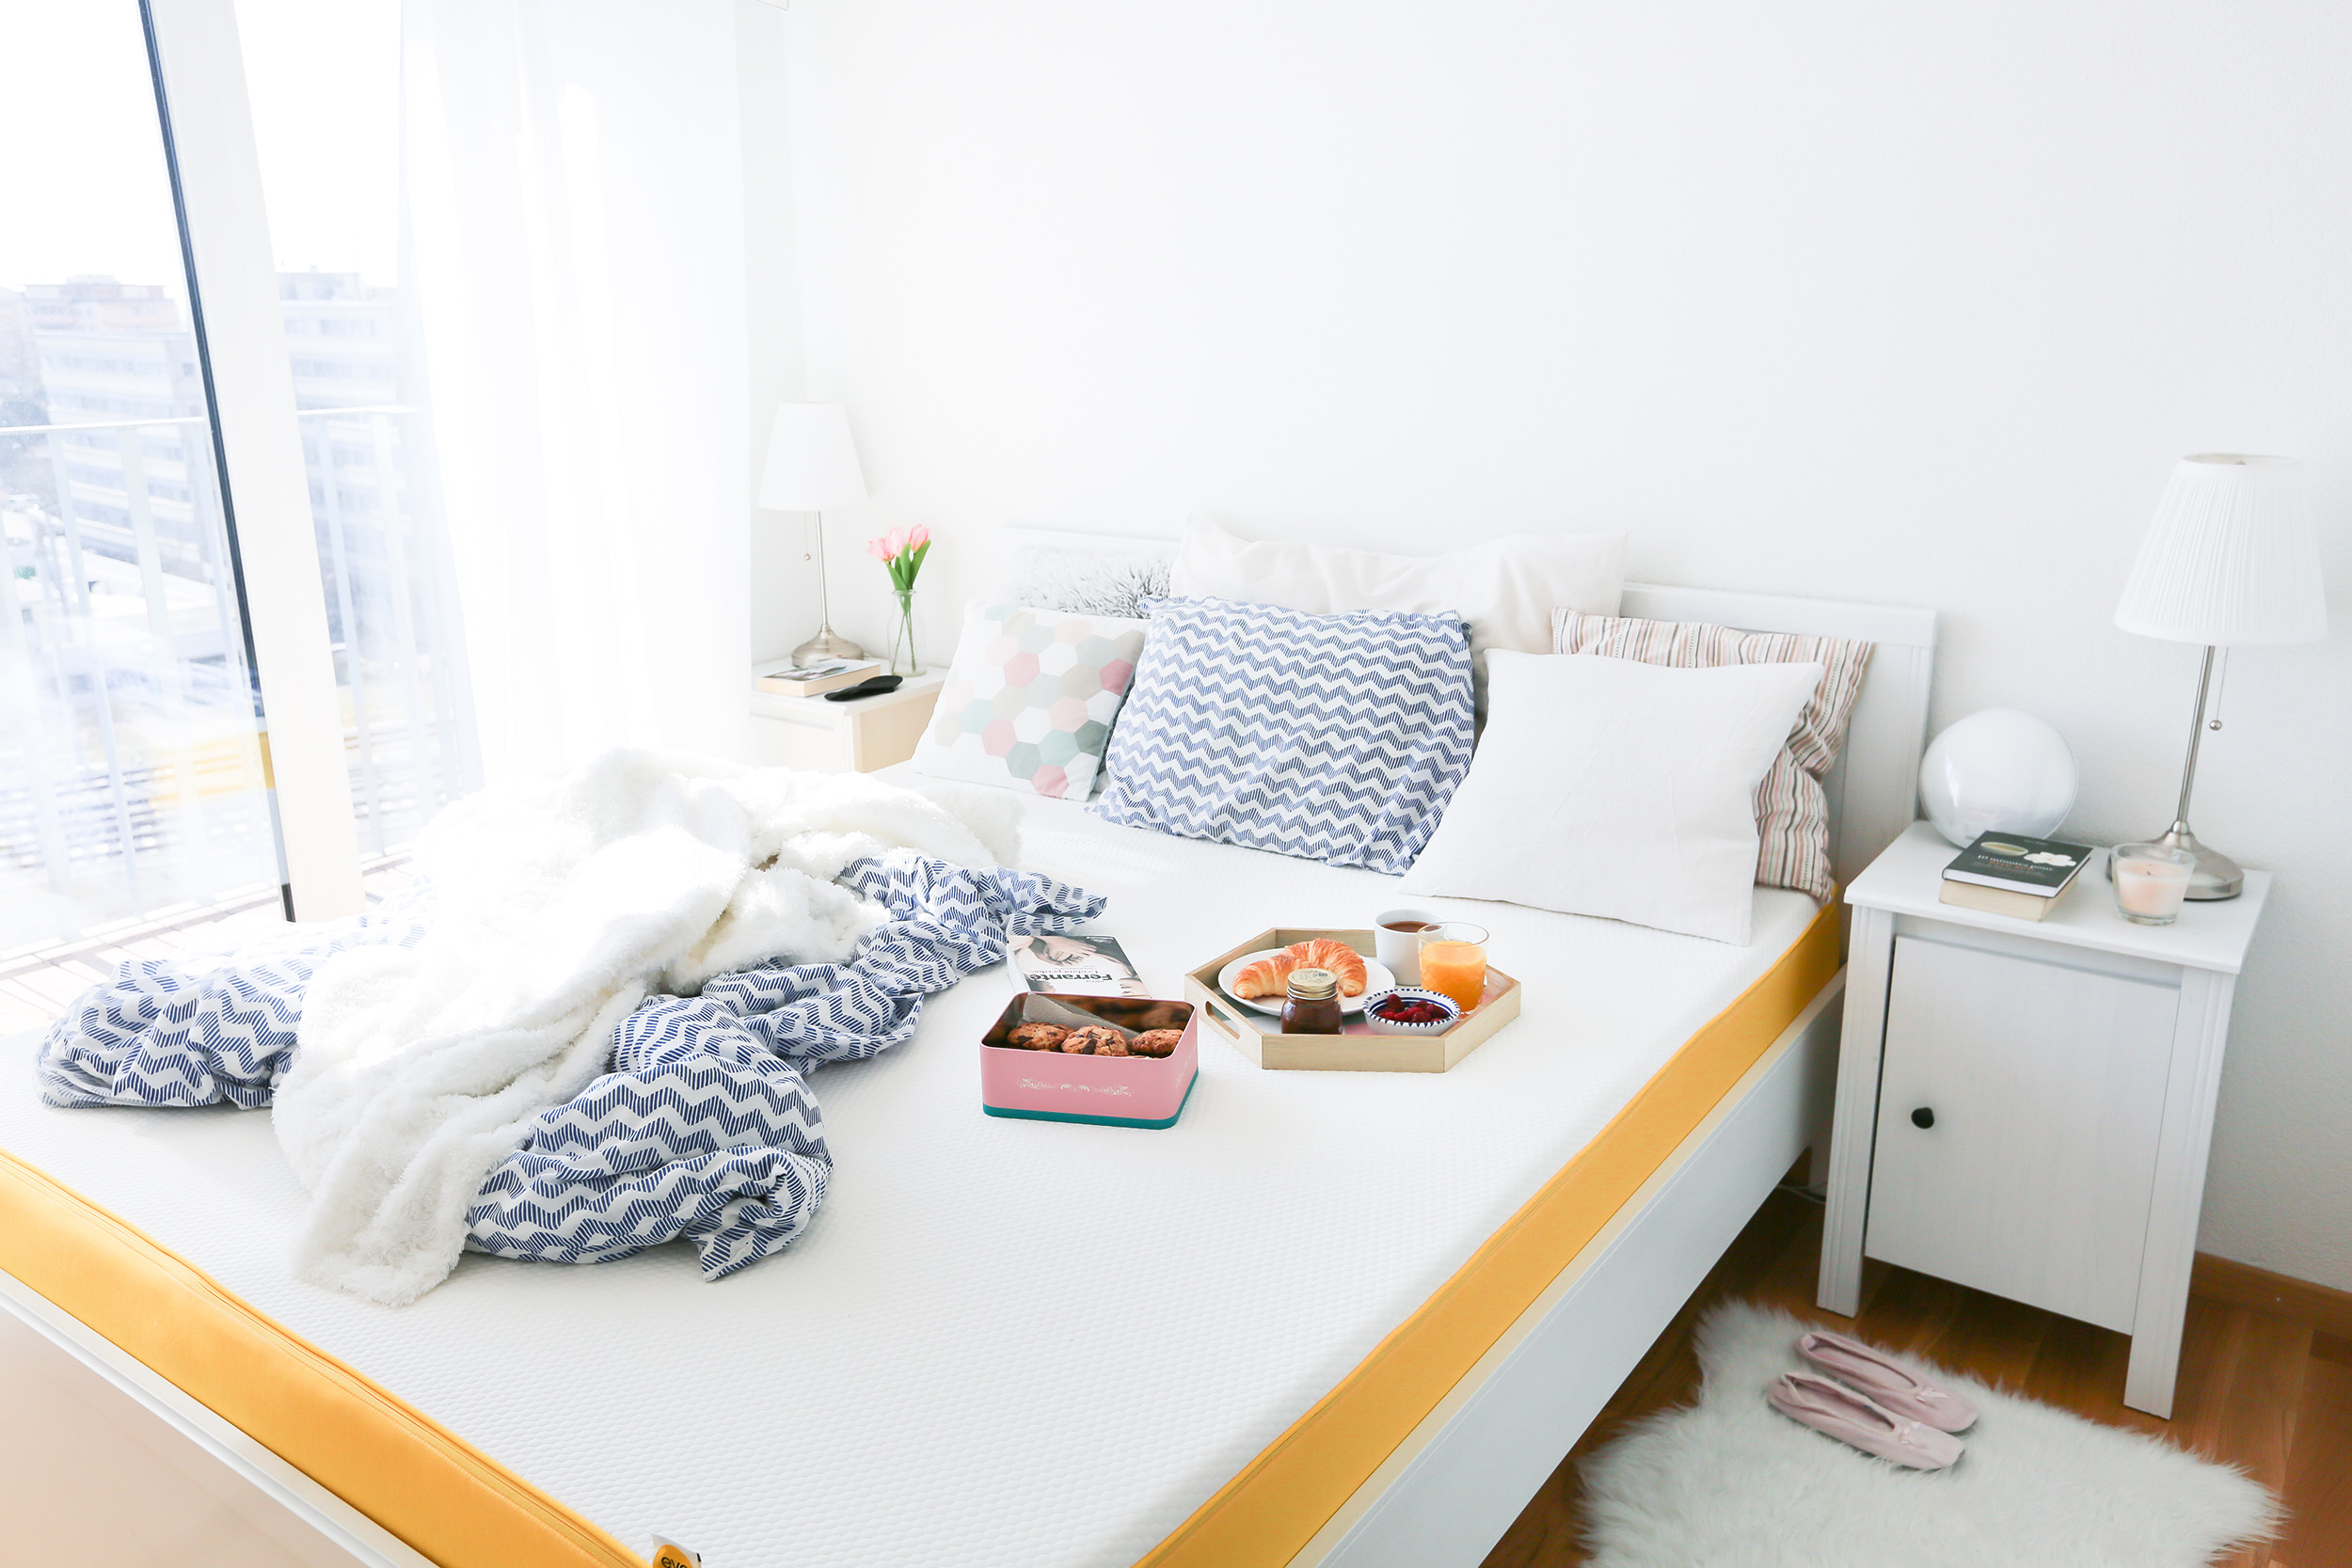 l importance de bien dormir de belles nuits avec le matelas eve ally bing. Black Bedroom Furniture Sets. Home Design Ideas